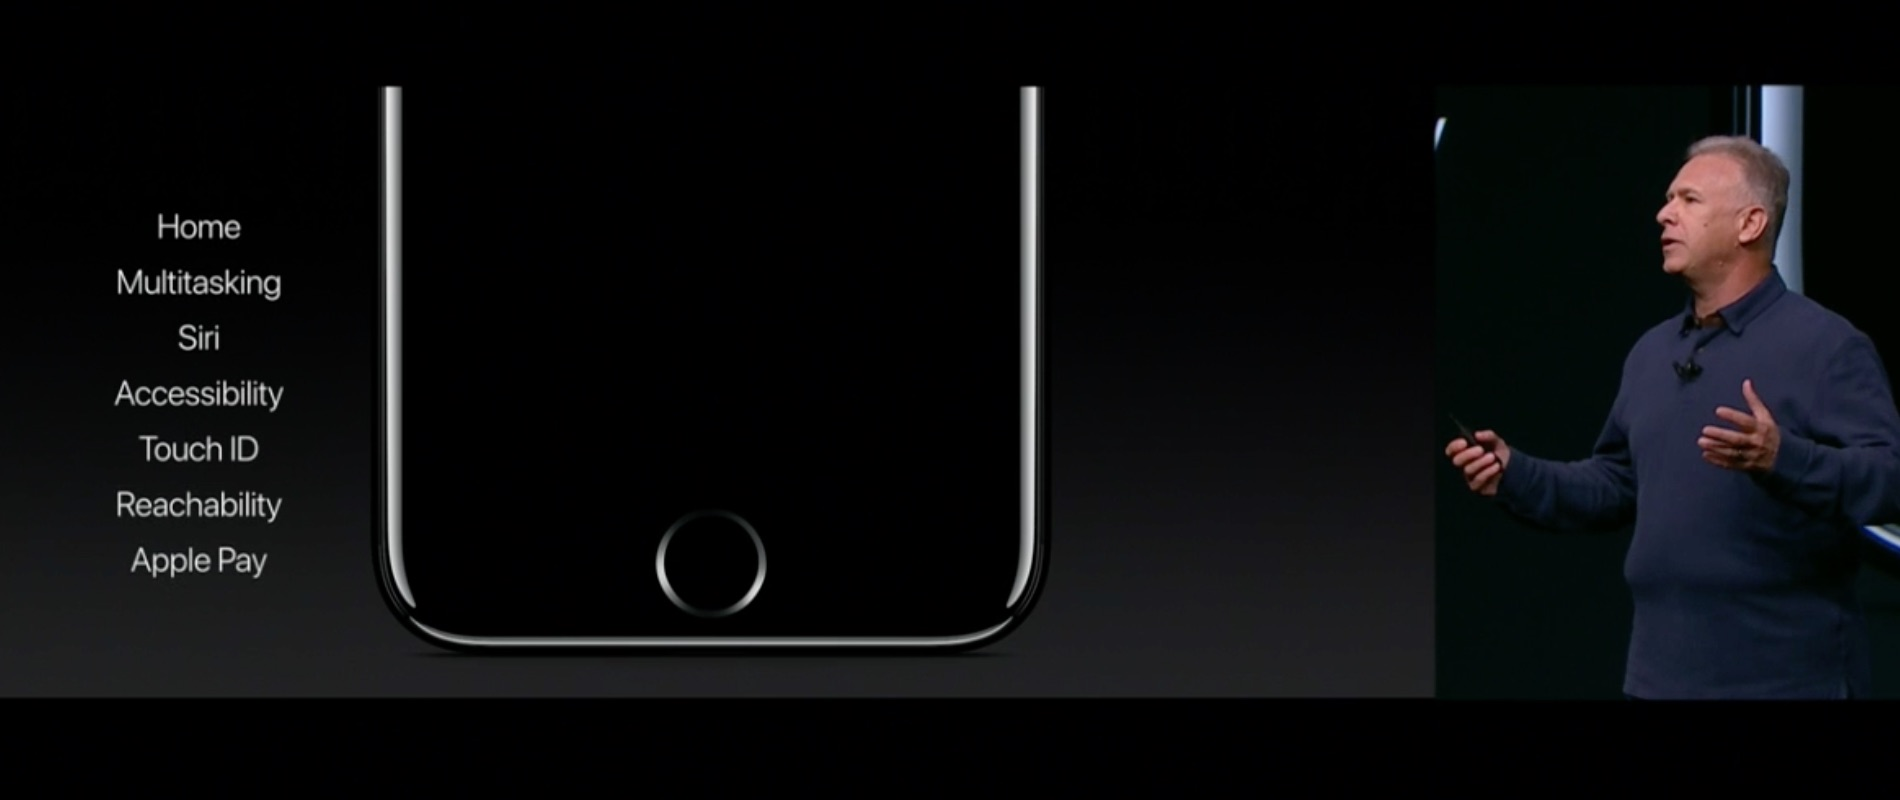 iphone7-plus-special-events-2016-sep-05